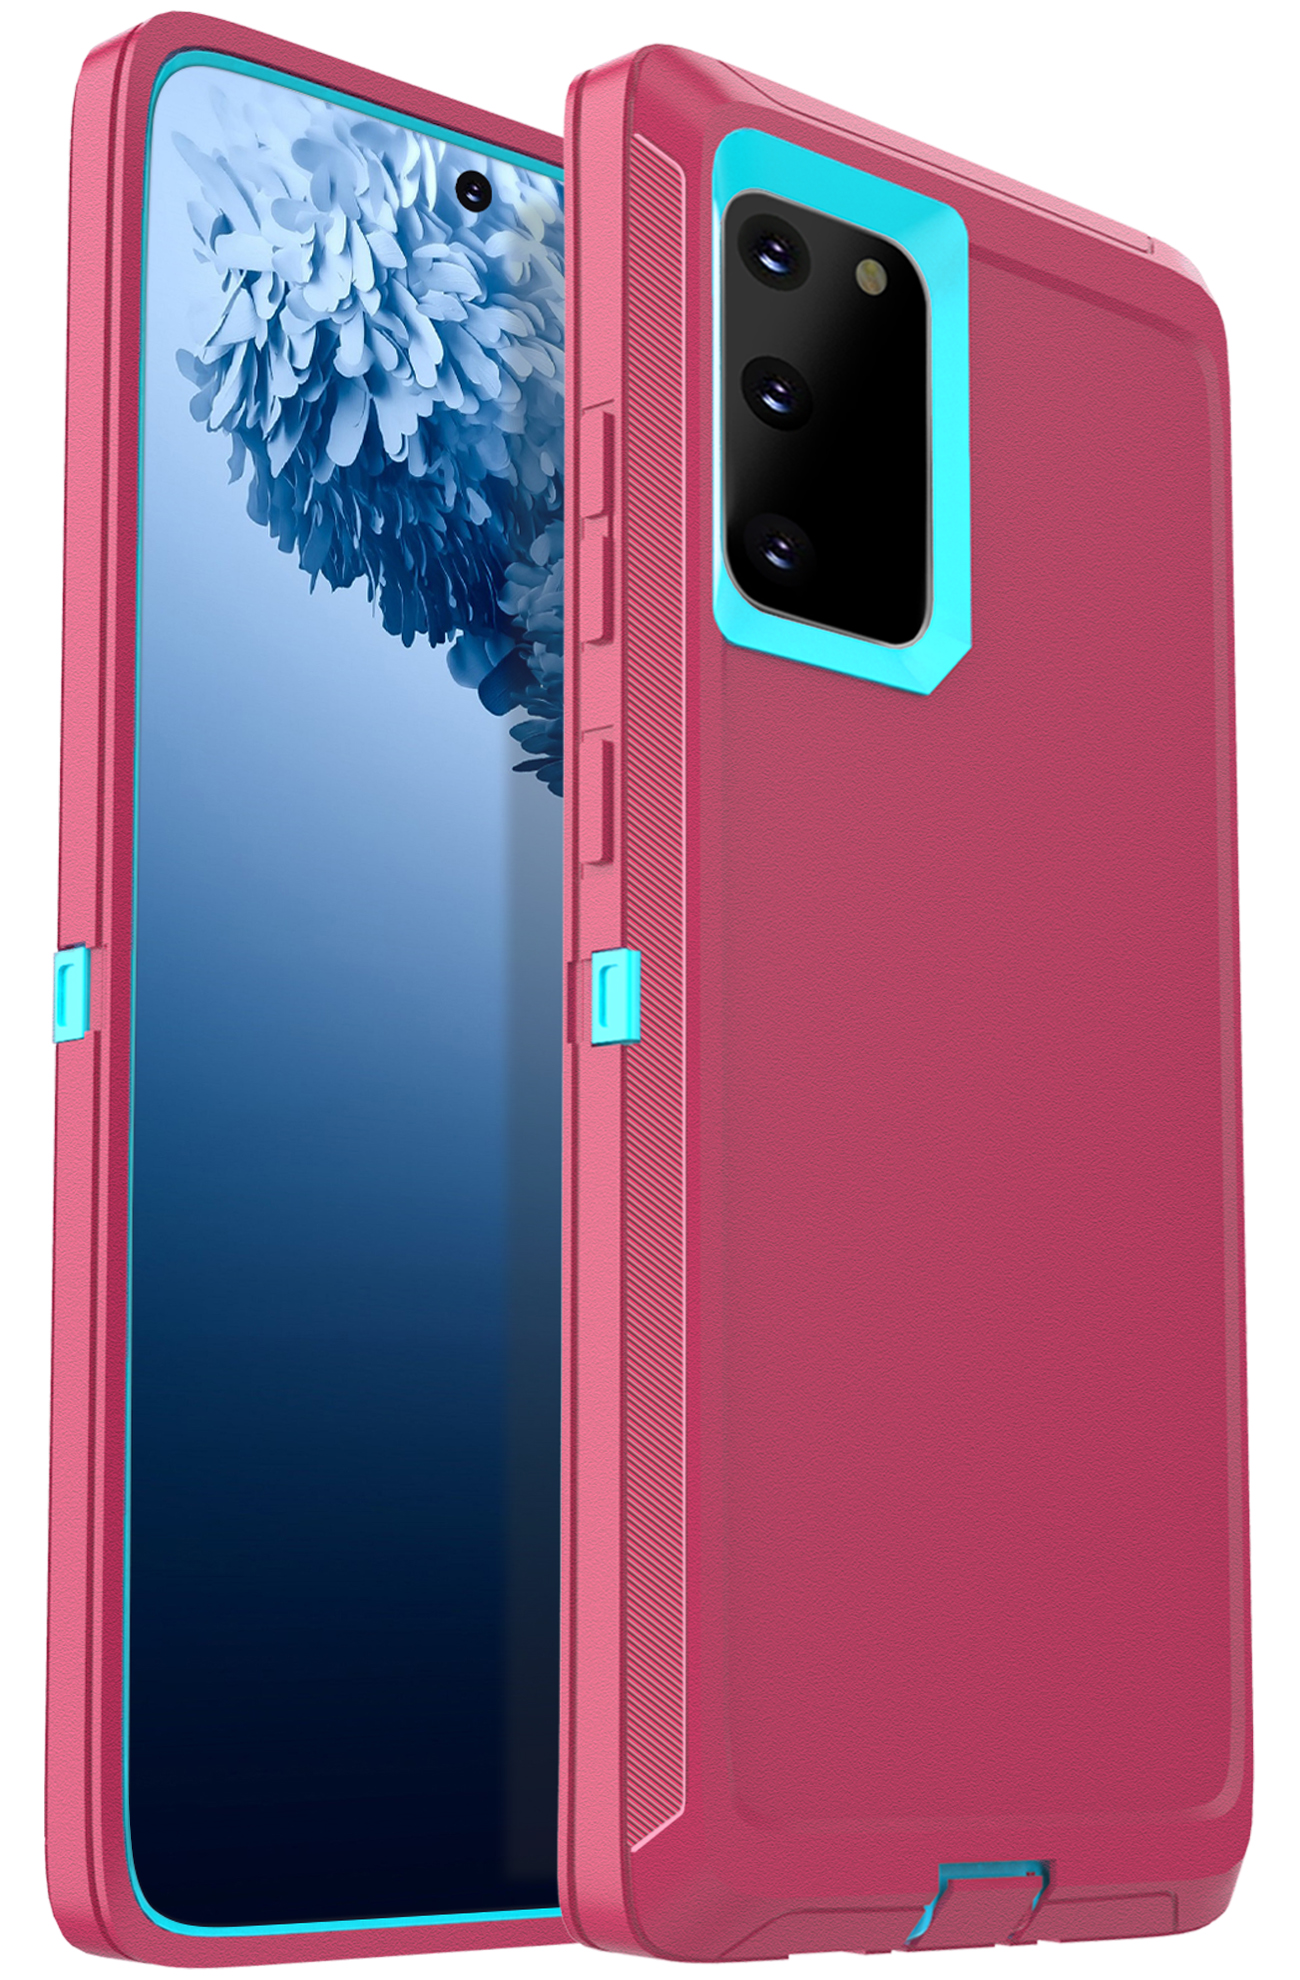 FOGEEK Compatible with Samsung Galaxy S20 5G Case, Heavy Duty Rugged Case, Protective Cover (Shockproof)(Drop Proof) Case for Galaxy S20 5G (6.2 inch) 2020 (Rose/Blue)